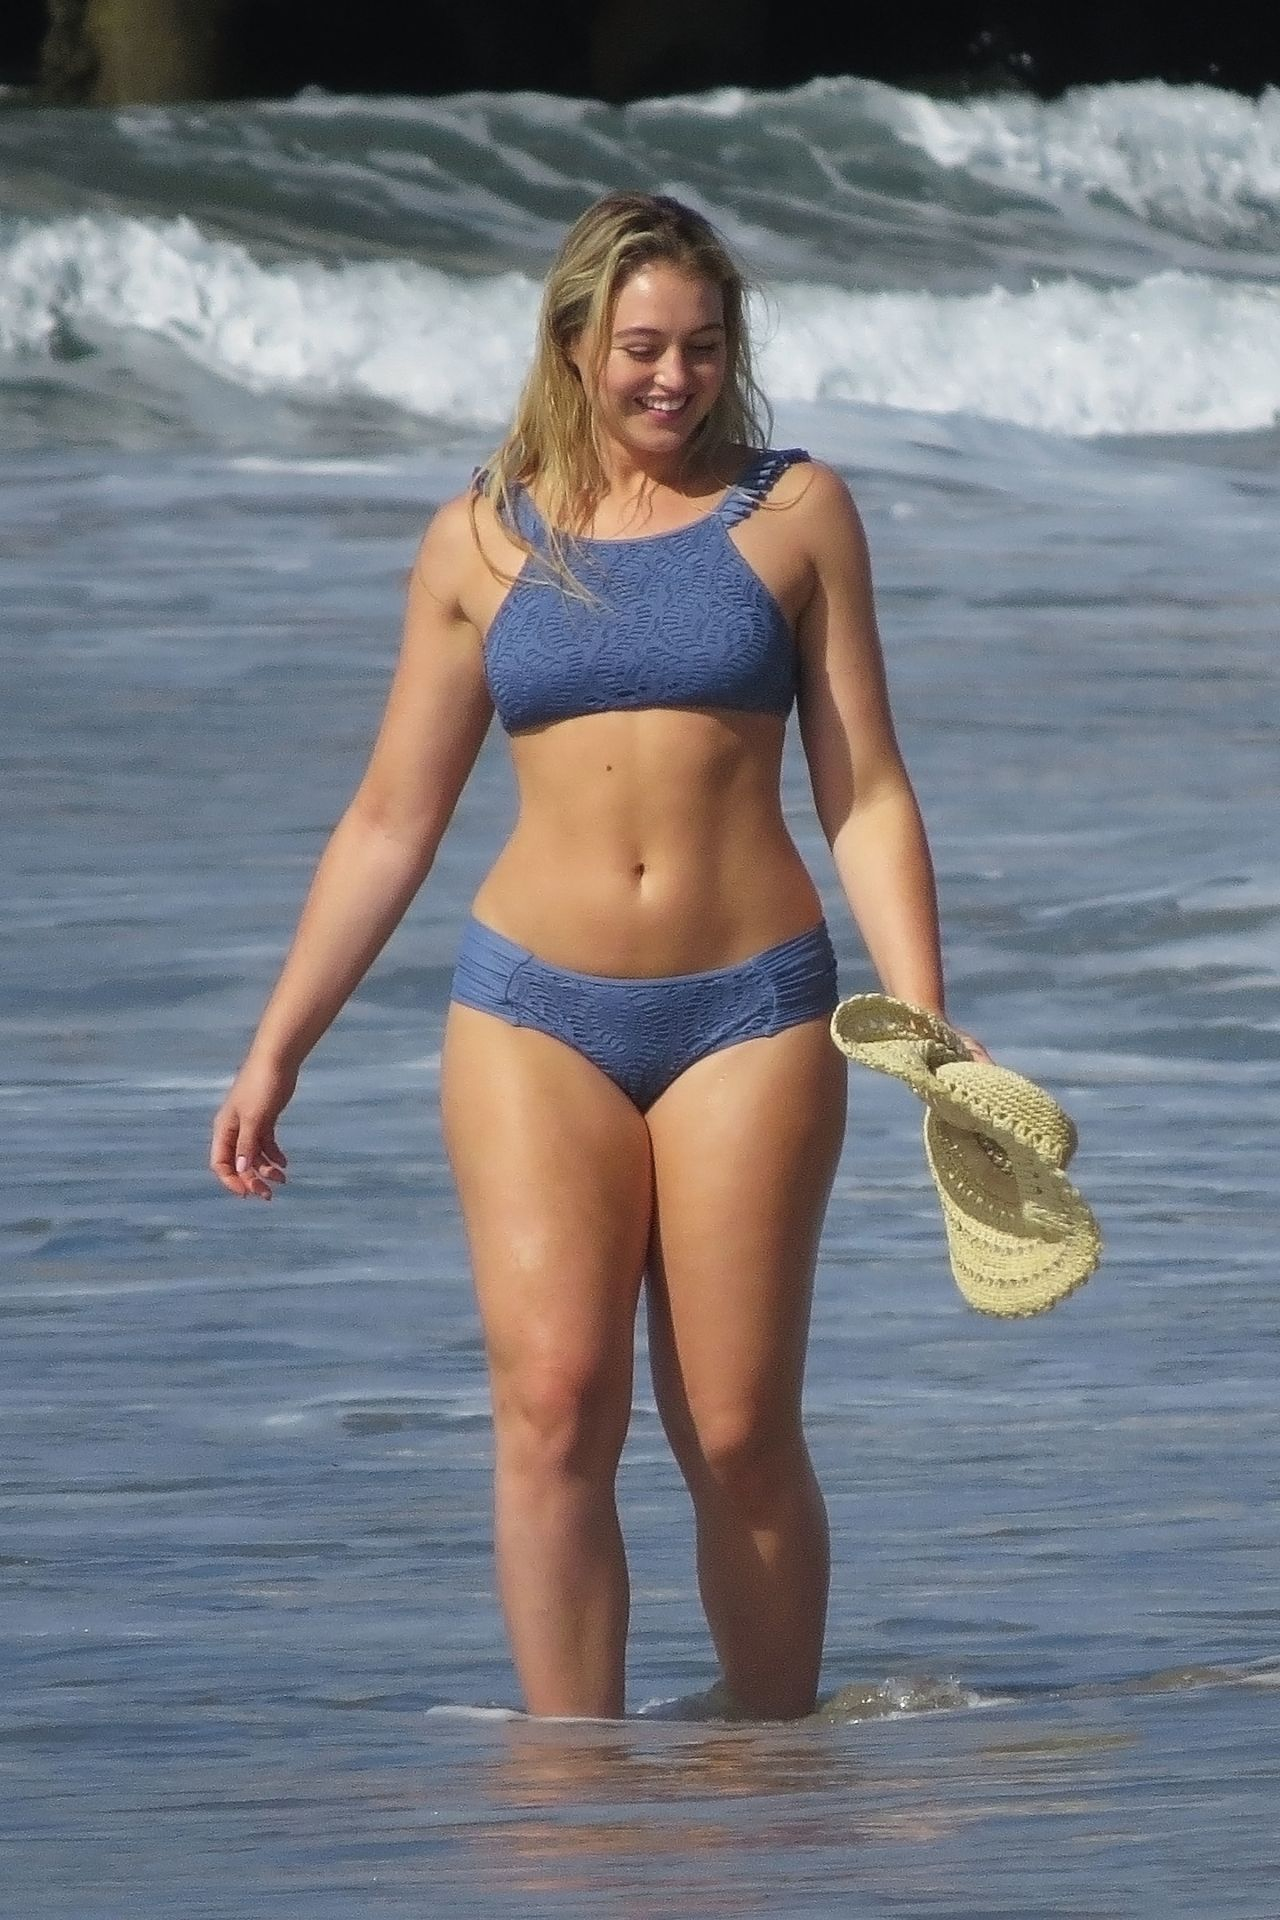 Bikini Iskra Lawrence naked (12 photos), Topless, Sideboobs, Instagram, butt 2019